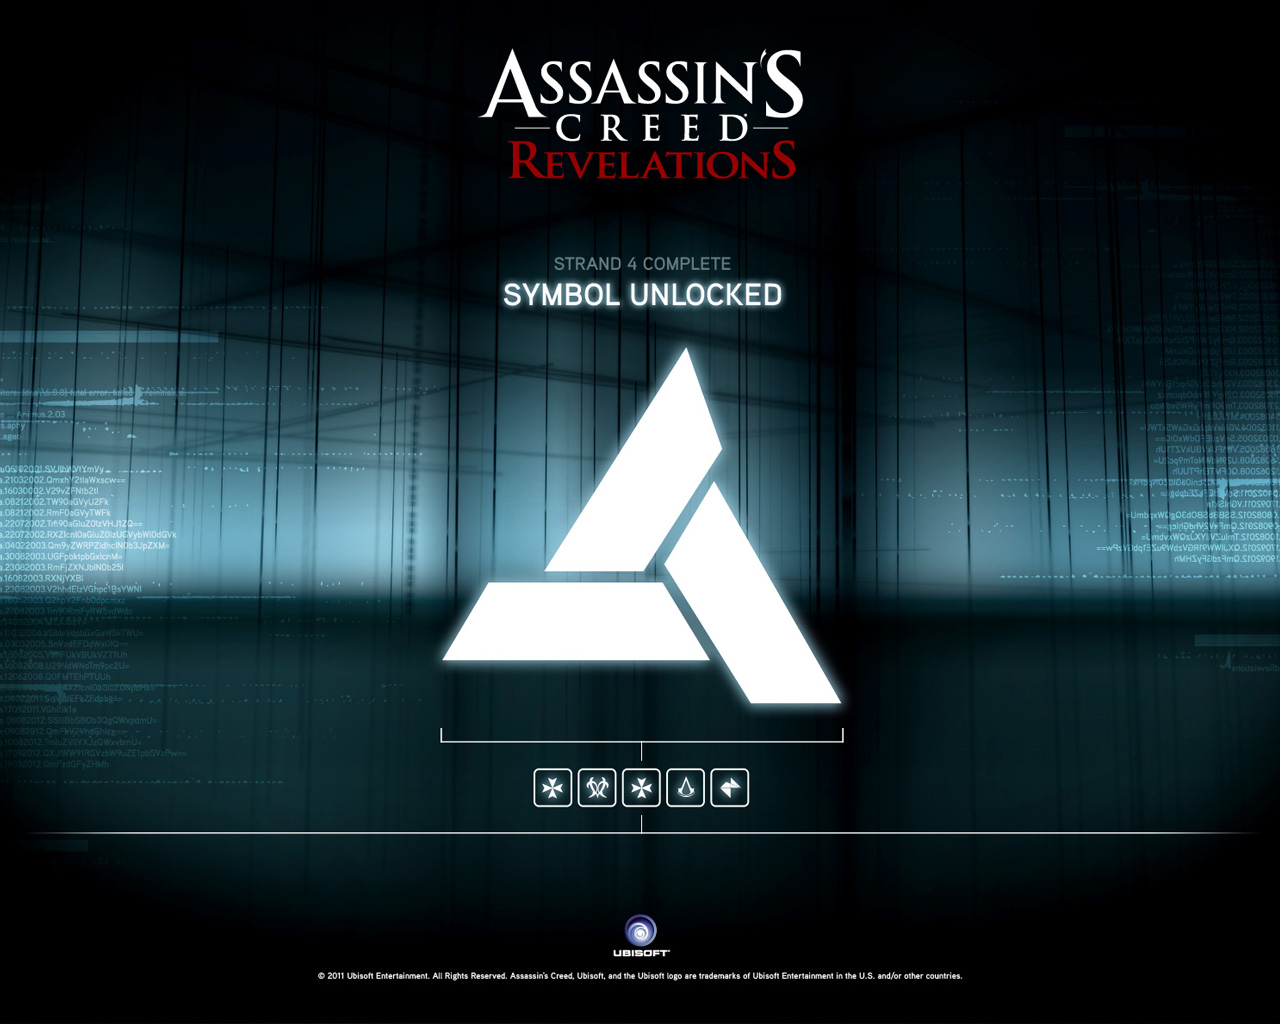 Assassin's Creed: Revelations Wallpaper in 1280x1024